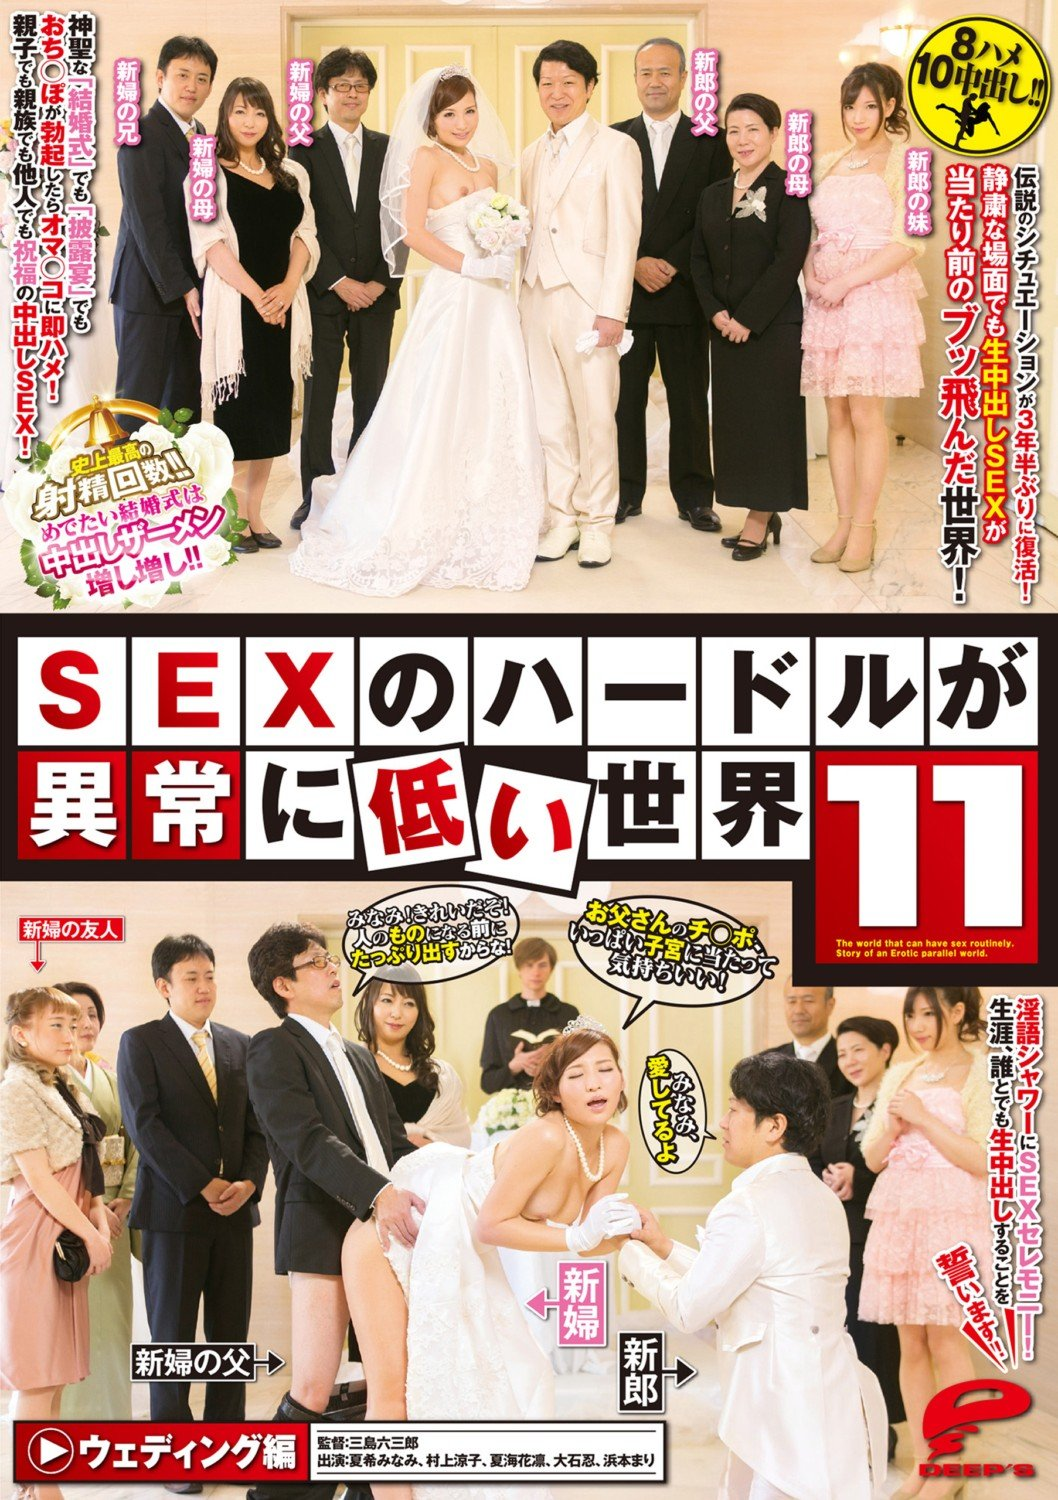 [DVDES-929] (English subbed) A World with Exceptionally Low Hurdles to SEX 11